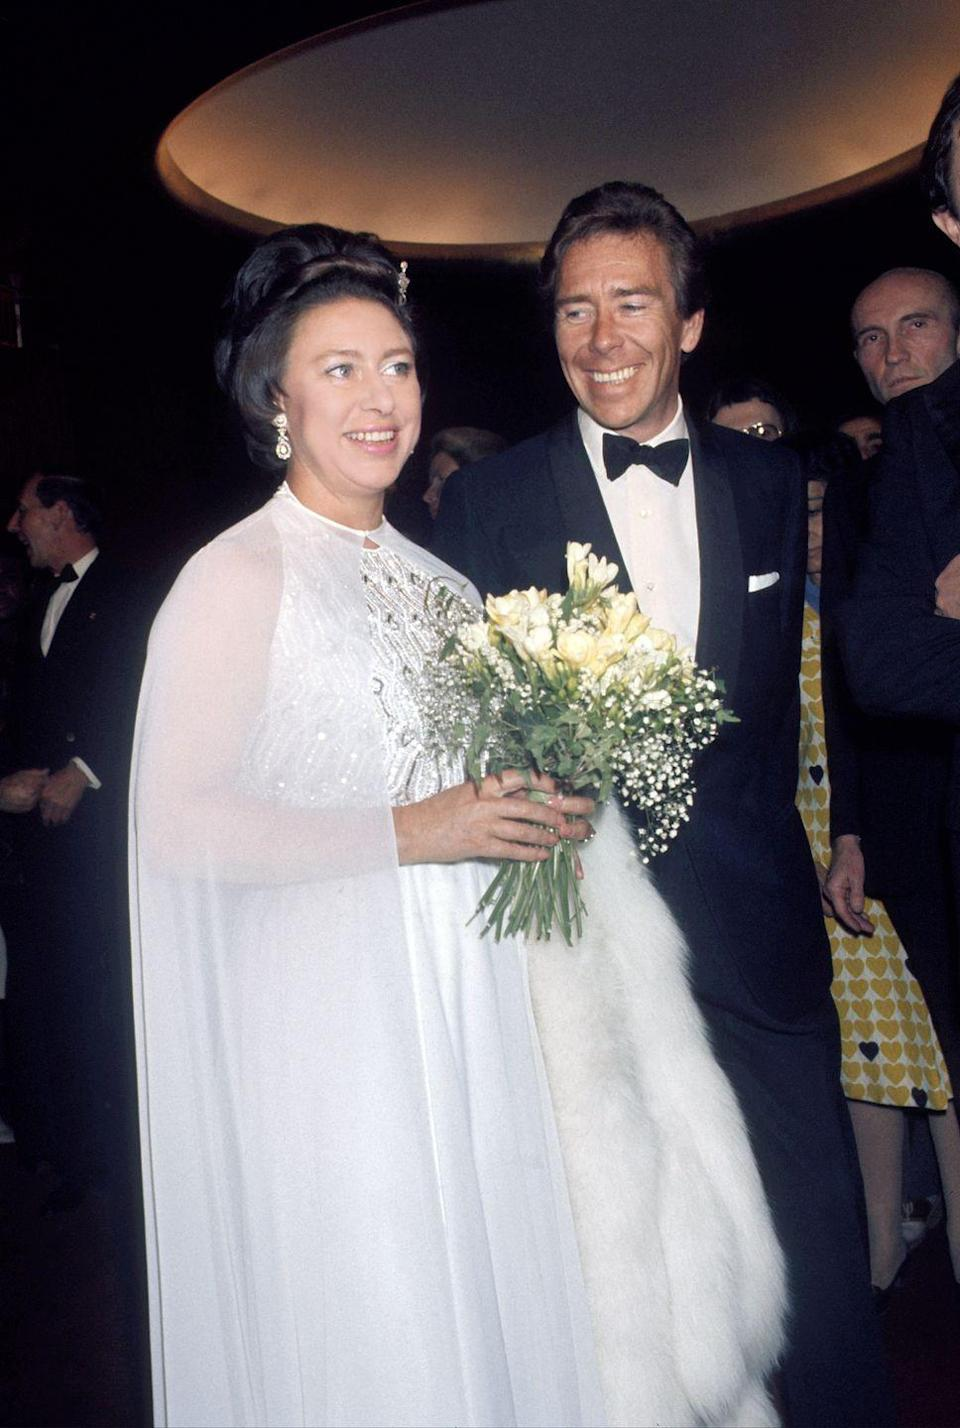 <p>Princess Margaret wore a white caped gown with sequined detailing to a ballet performance she attended with her husband, Antony Armstrong-Jones, in New York. </p>